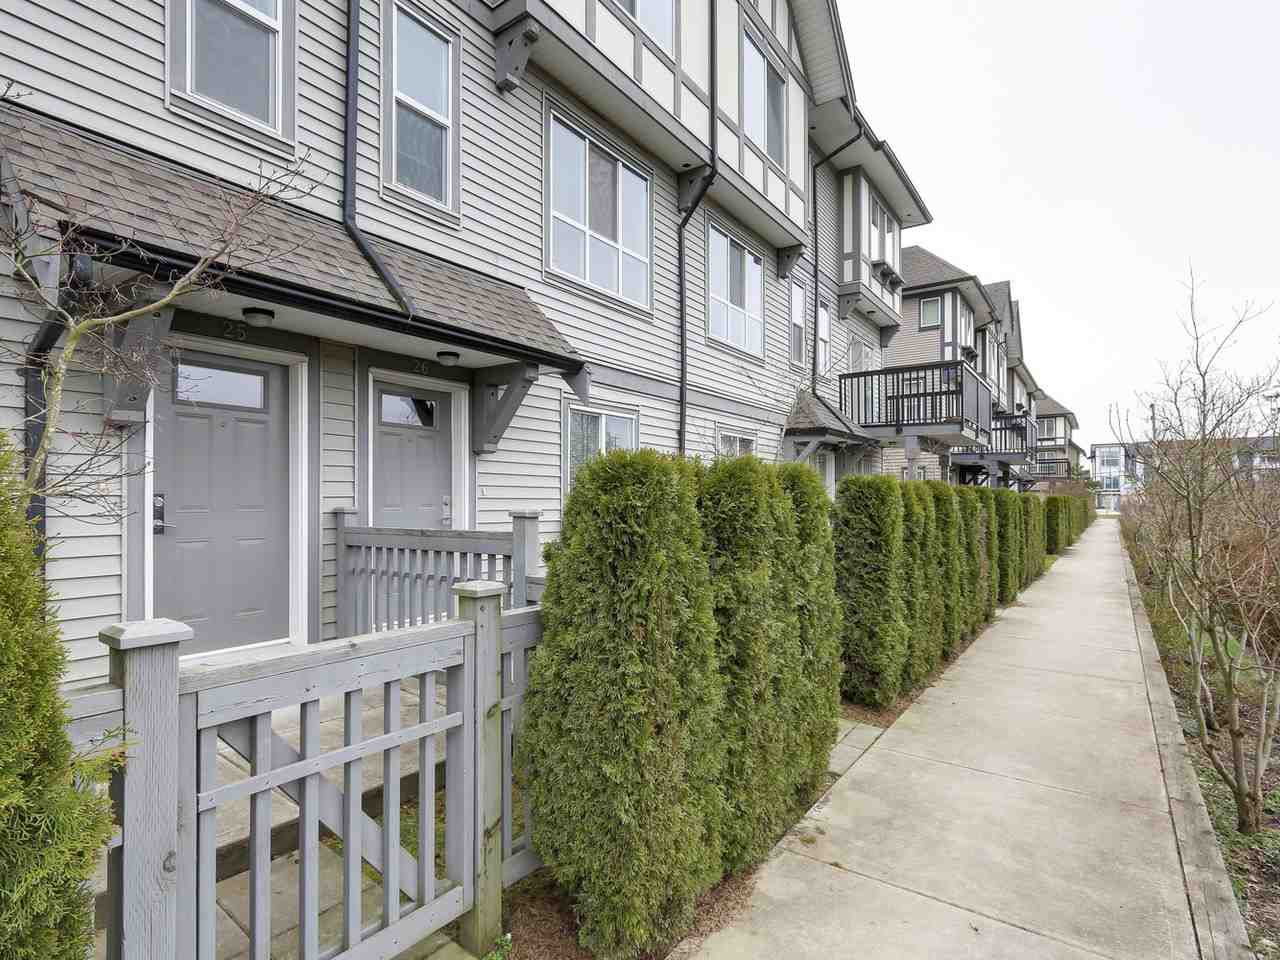 """Main Photo: 25 9566 TOMICKI Avenue in Richmond: West Cambie Townhouse for sale in """"WISHING TREE"""" : MLS®# R2153565"""